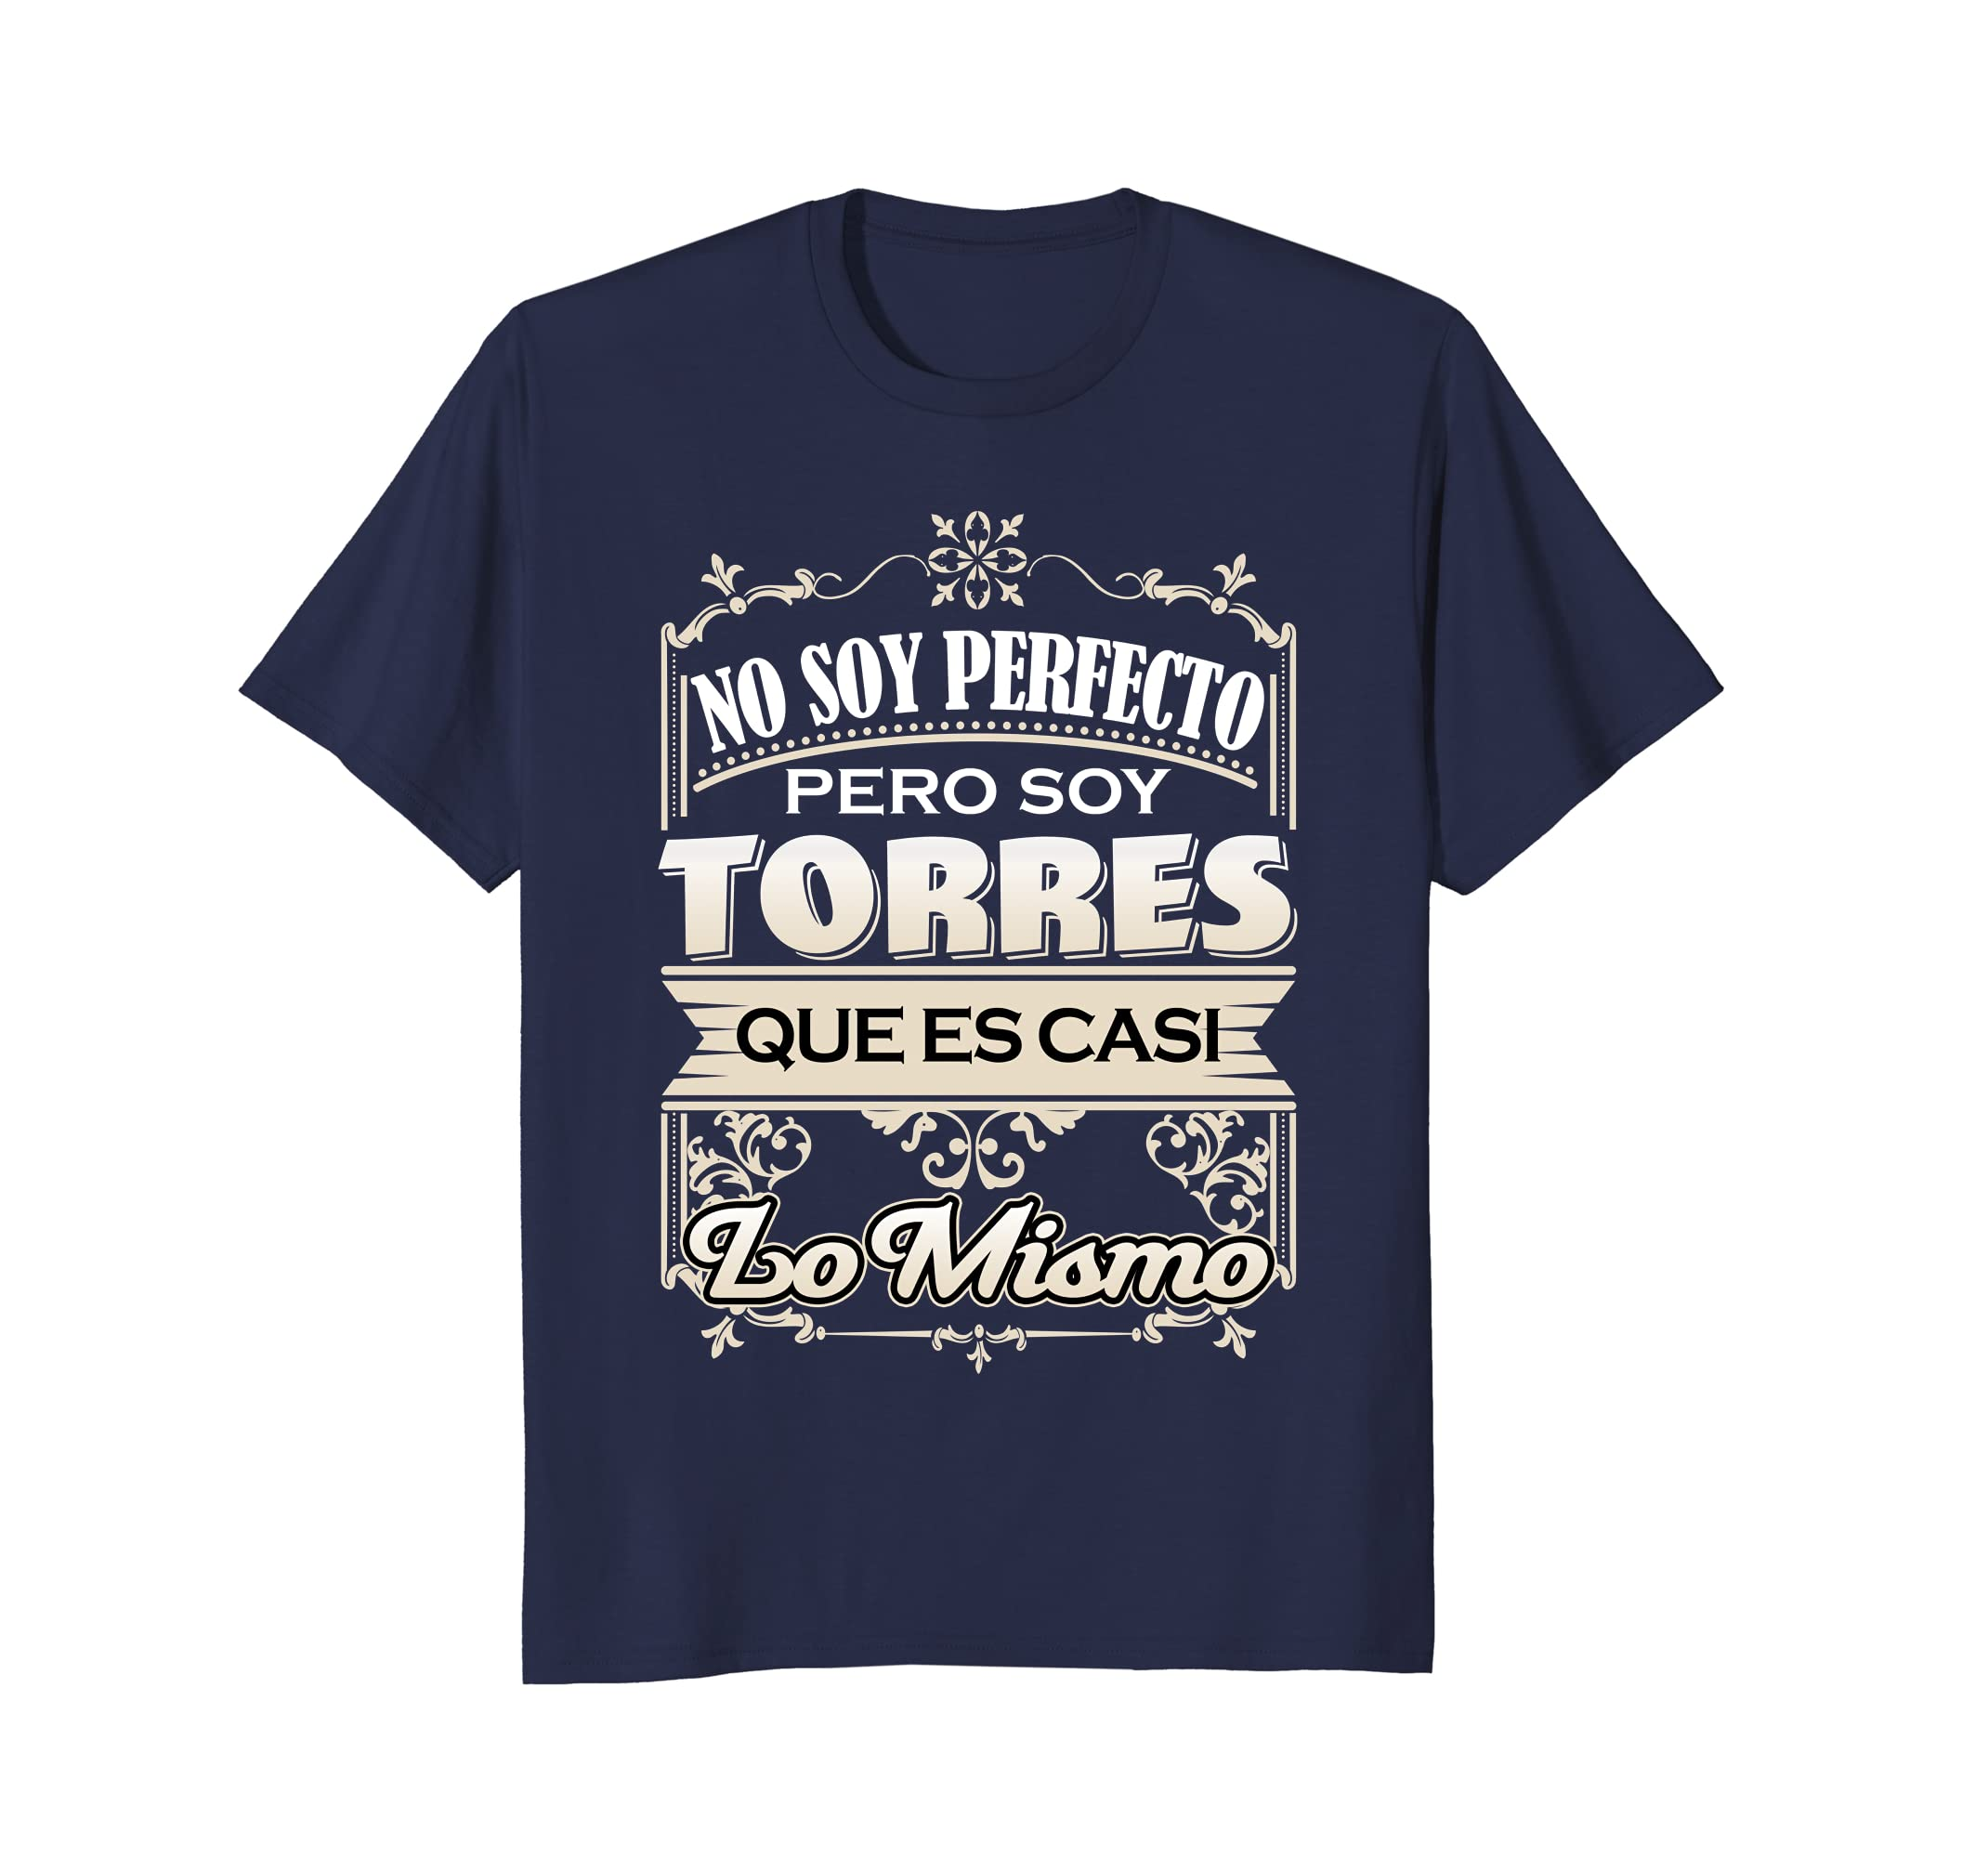 Amazon.com: Hombre Camiseta Apellido Torres Last name Torres T-Shirt: Clothing